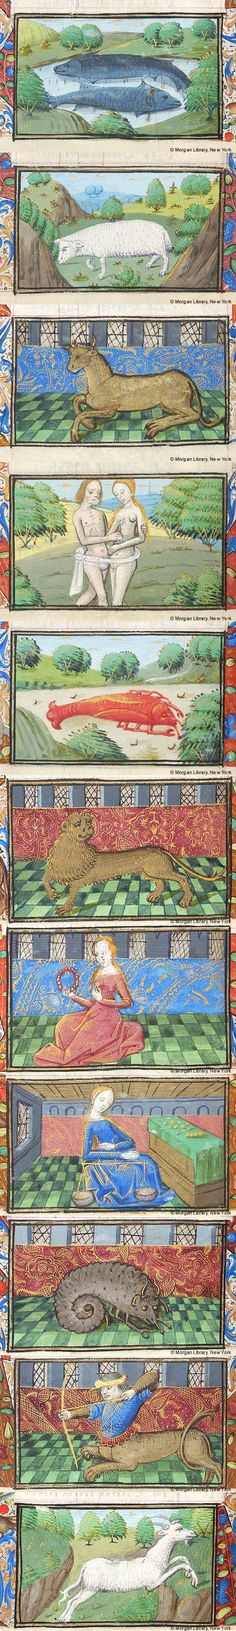 Signs of the Zodiac | Book of Hours | France, Rouen | ca. 1480 | The Morgan Library & Museum